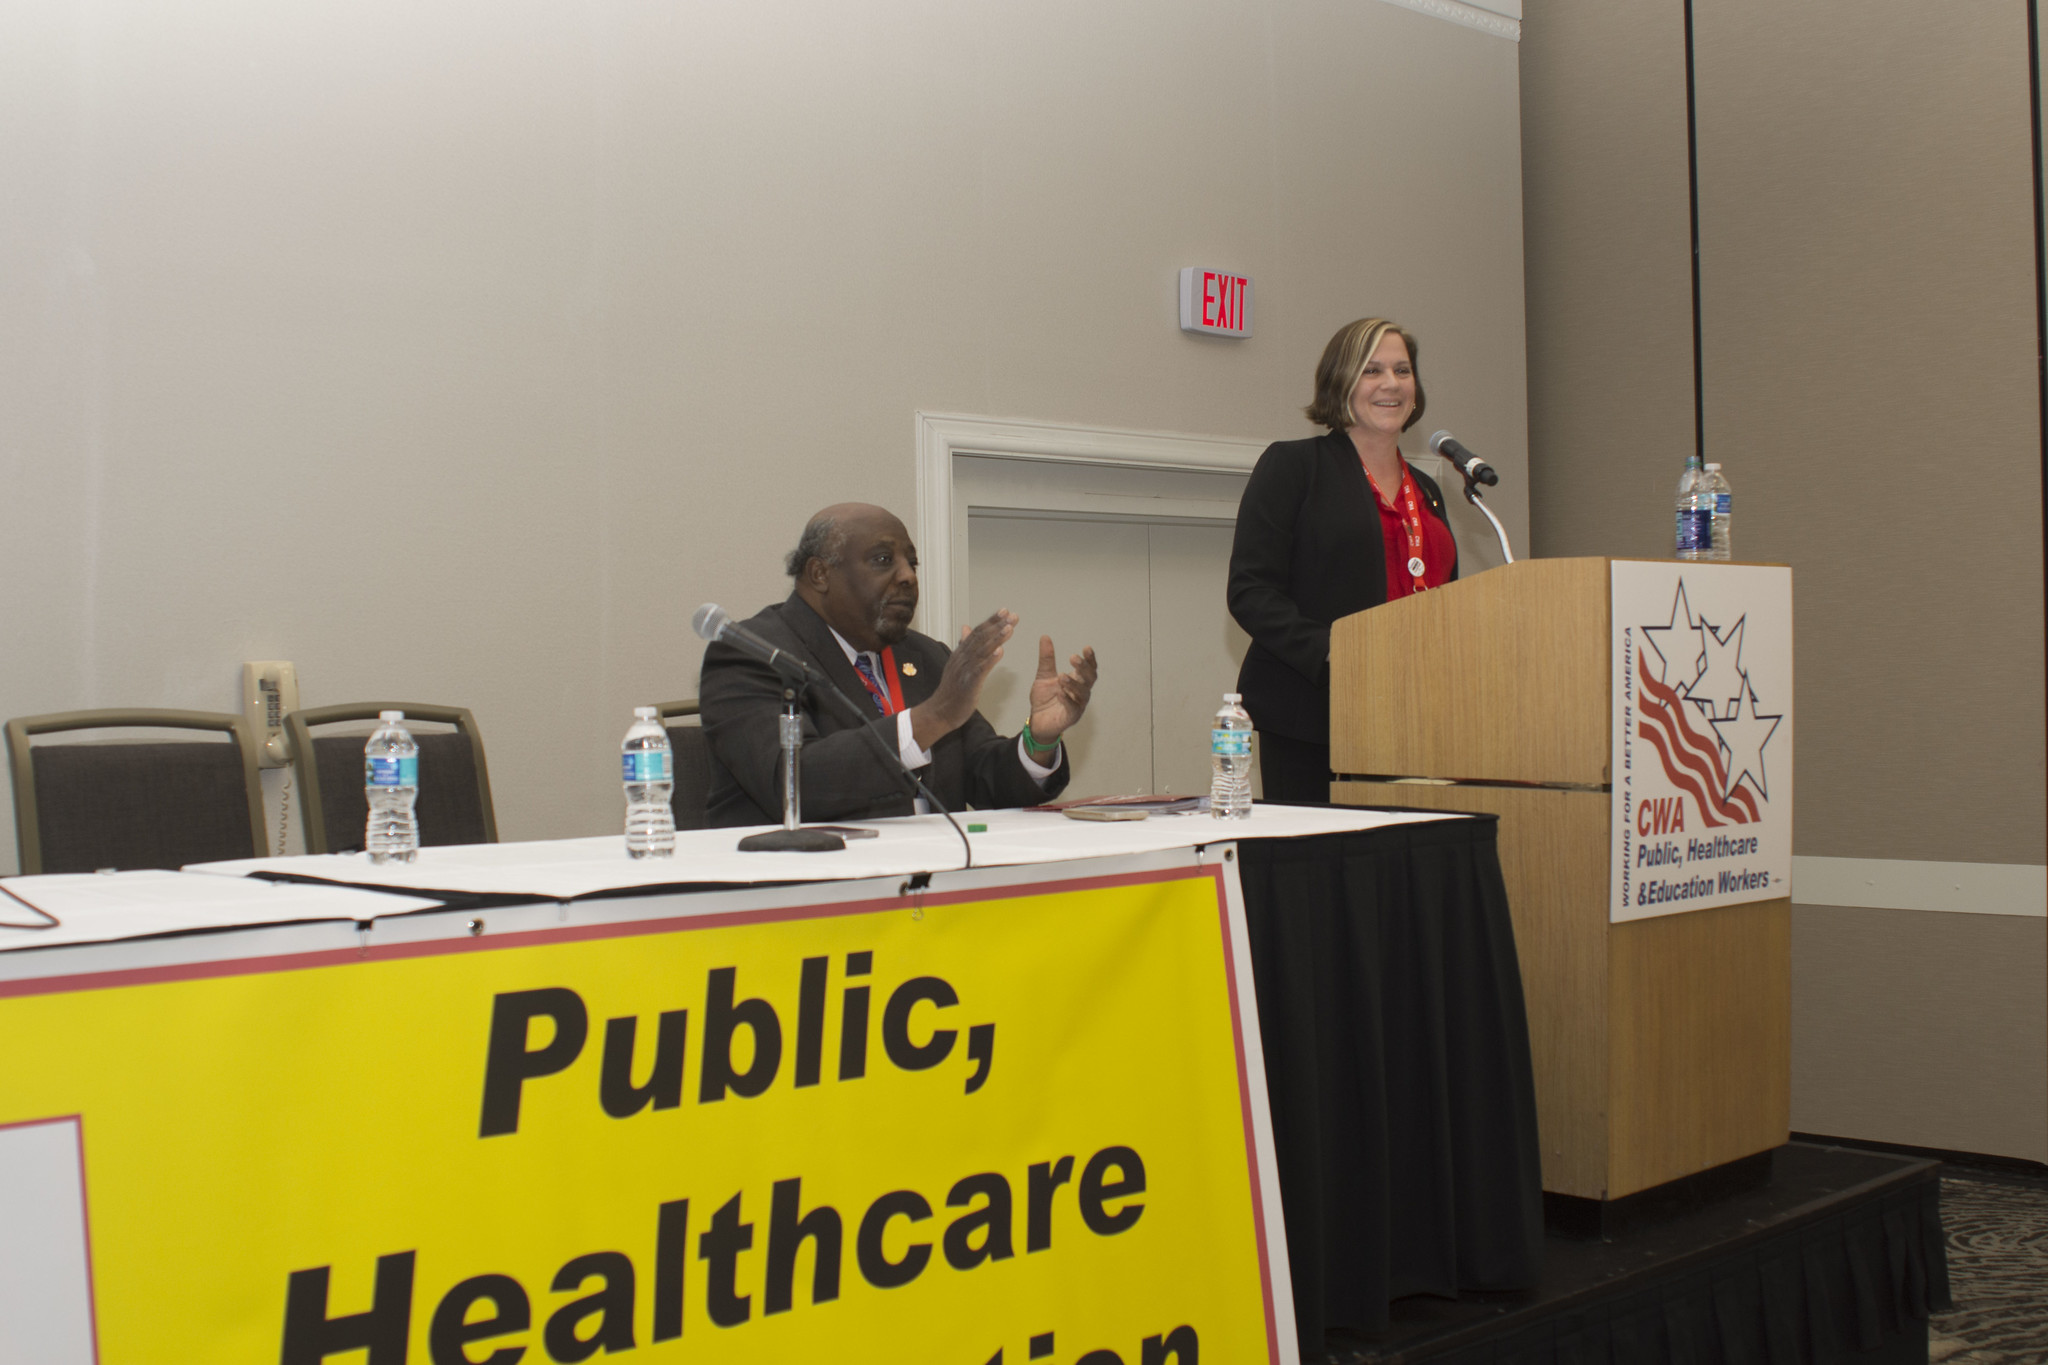 Sara Steffens at the 2017 Public, Healthcare, and Education Workers Conference